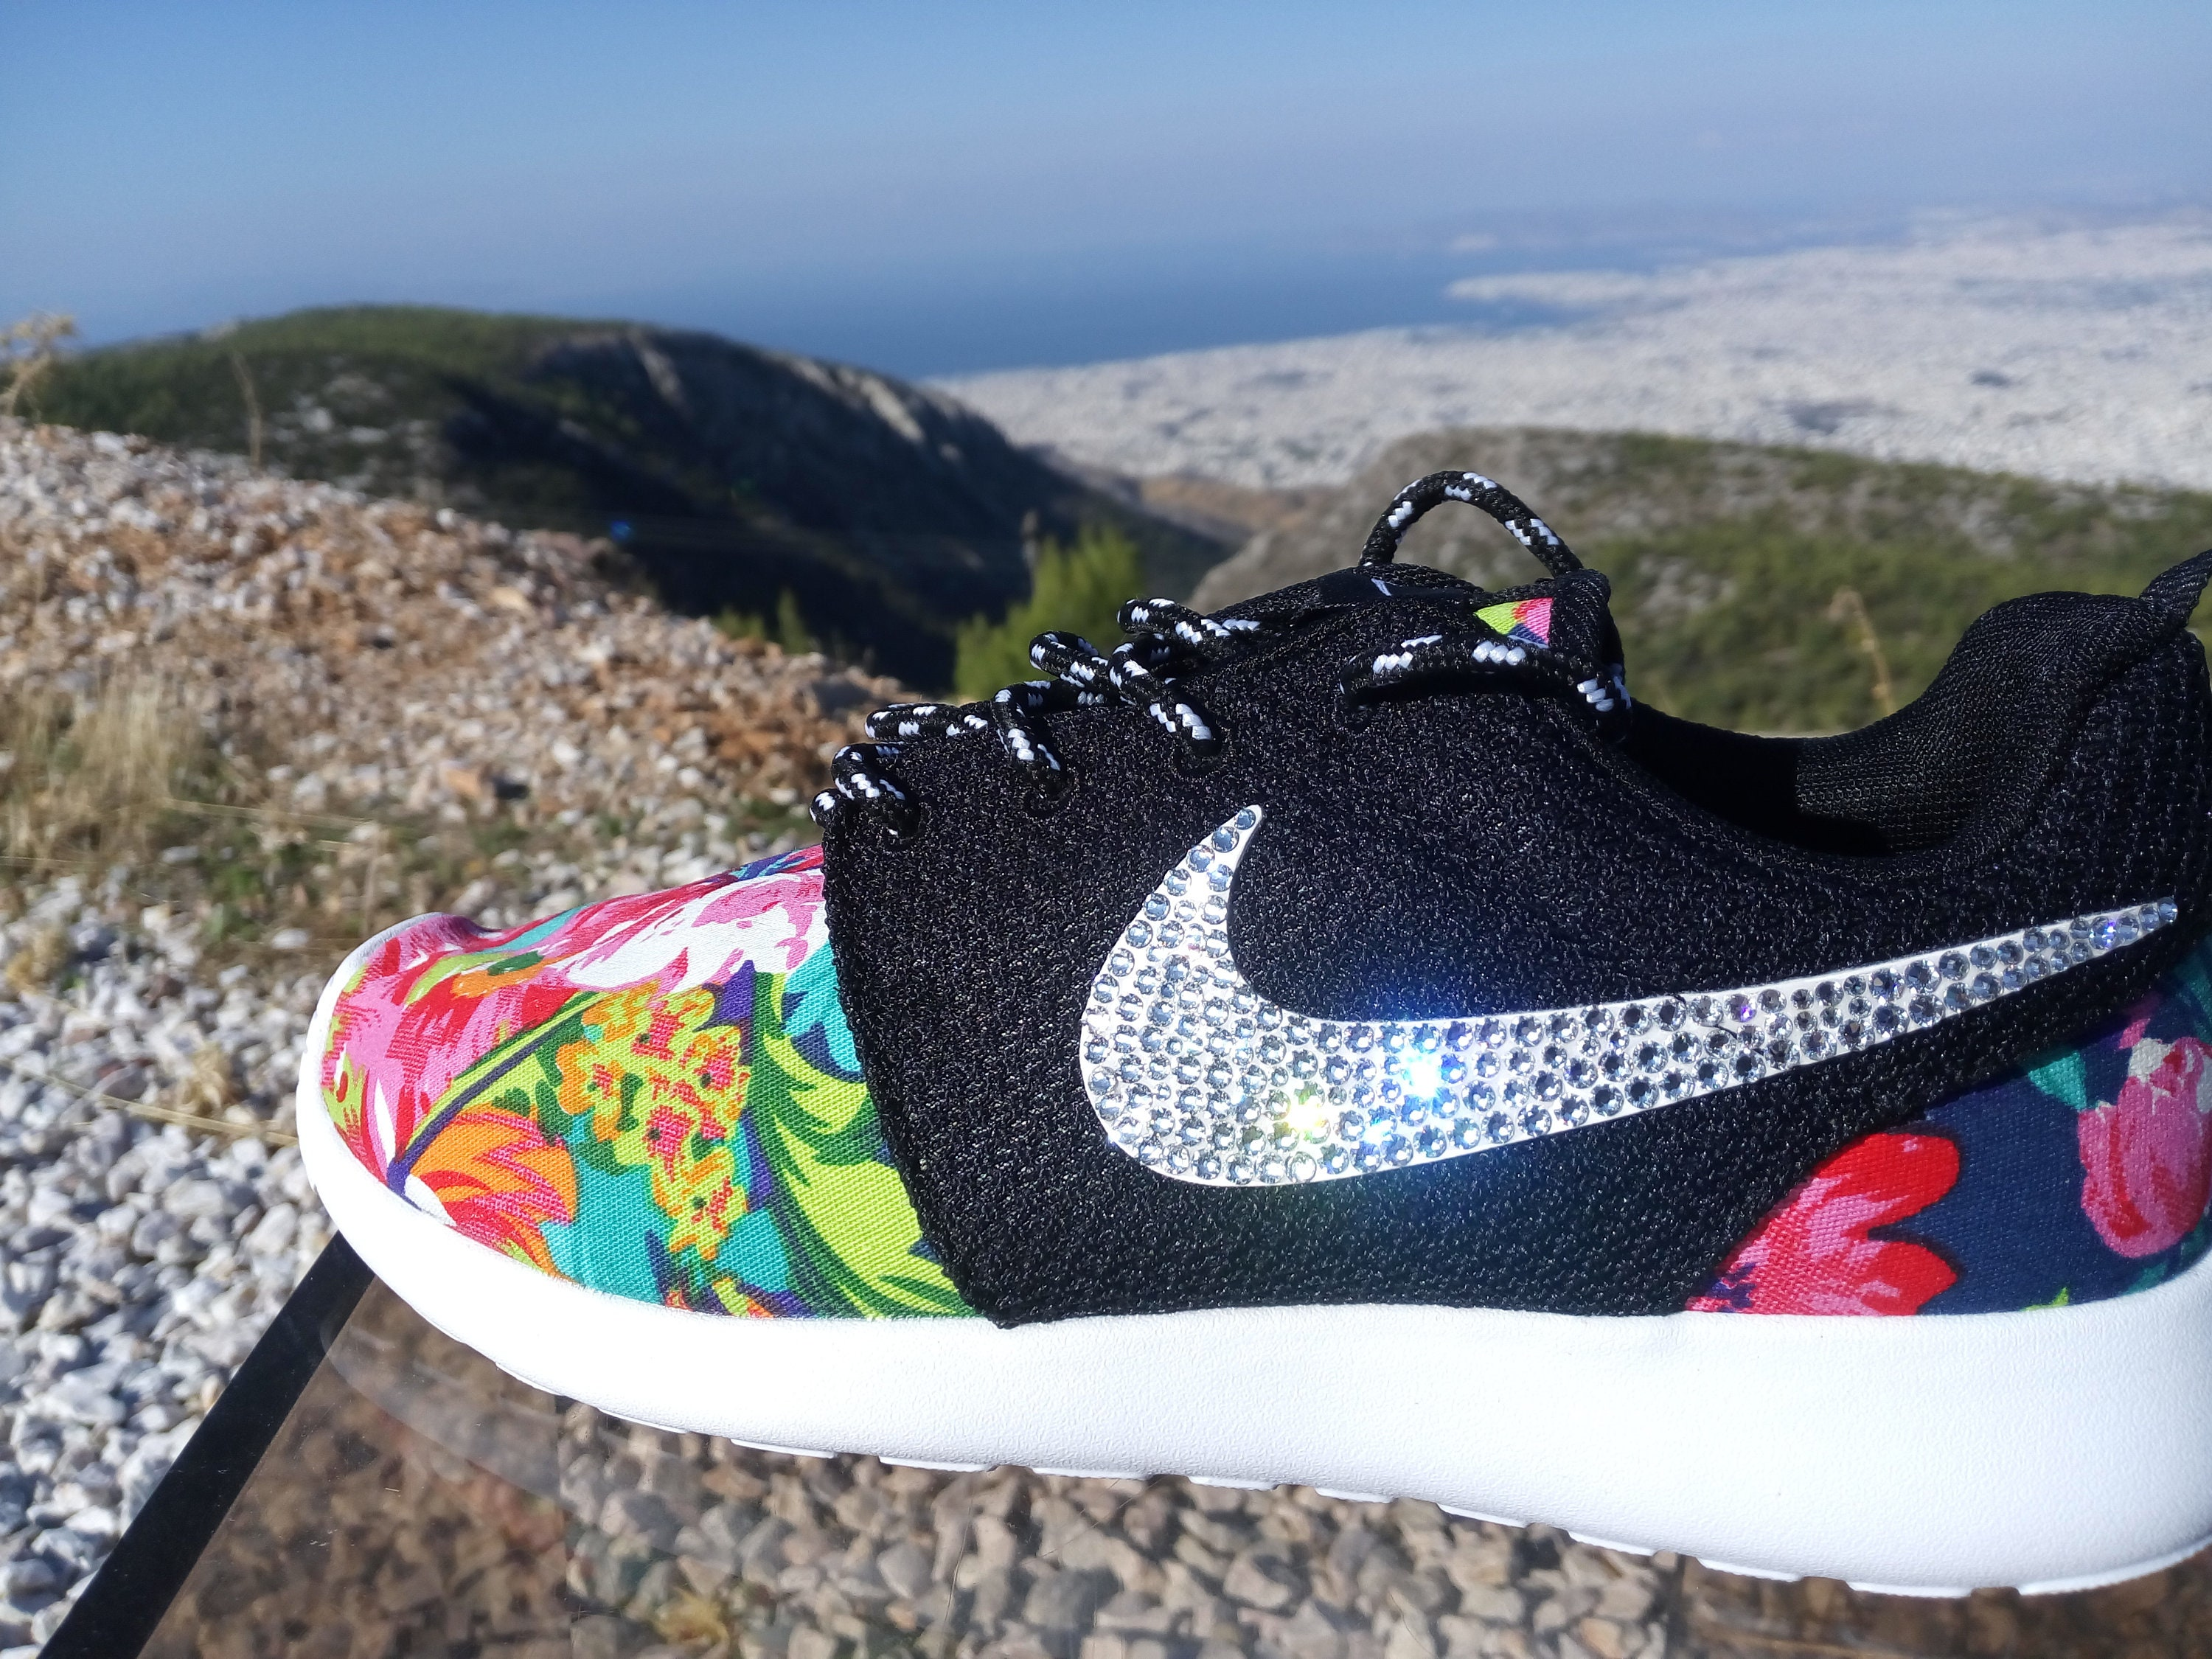 finest selection 48b3e 2b659 Custom womens nike roshe run fabric floral black color shoes   Etsy